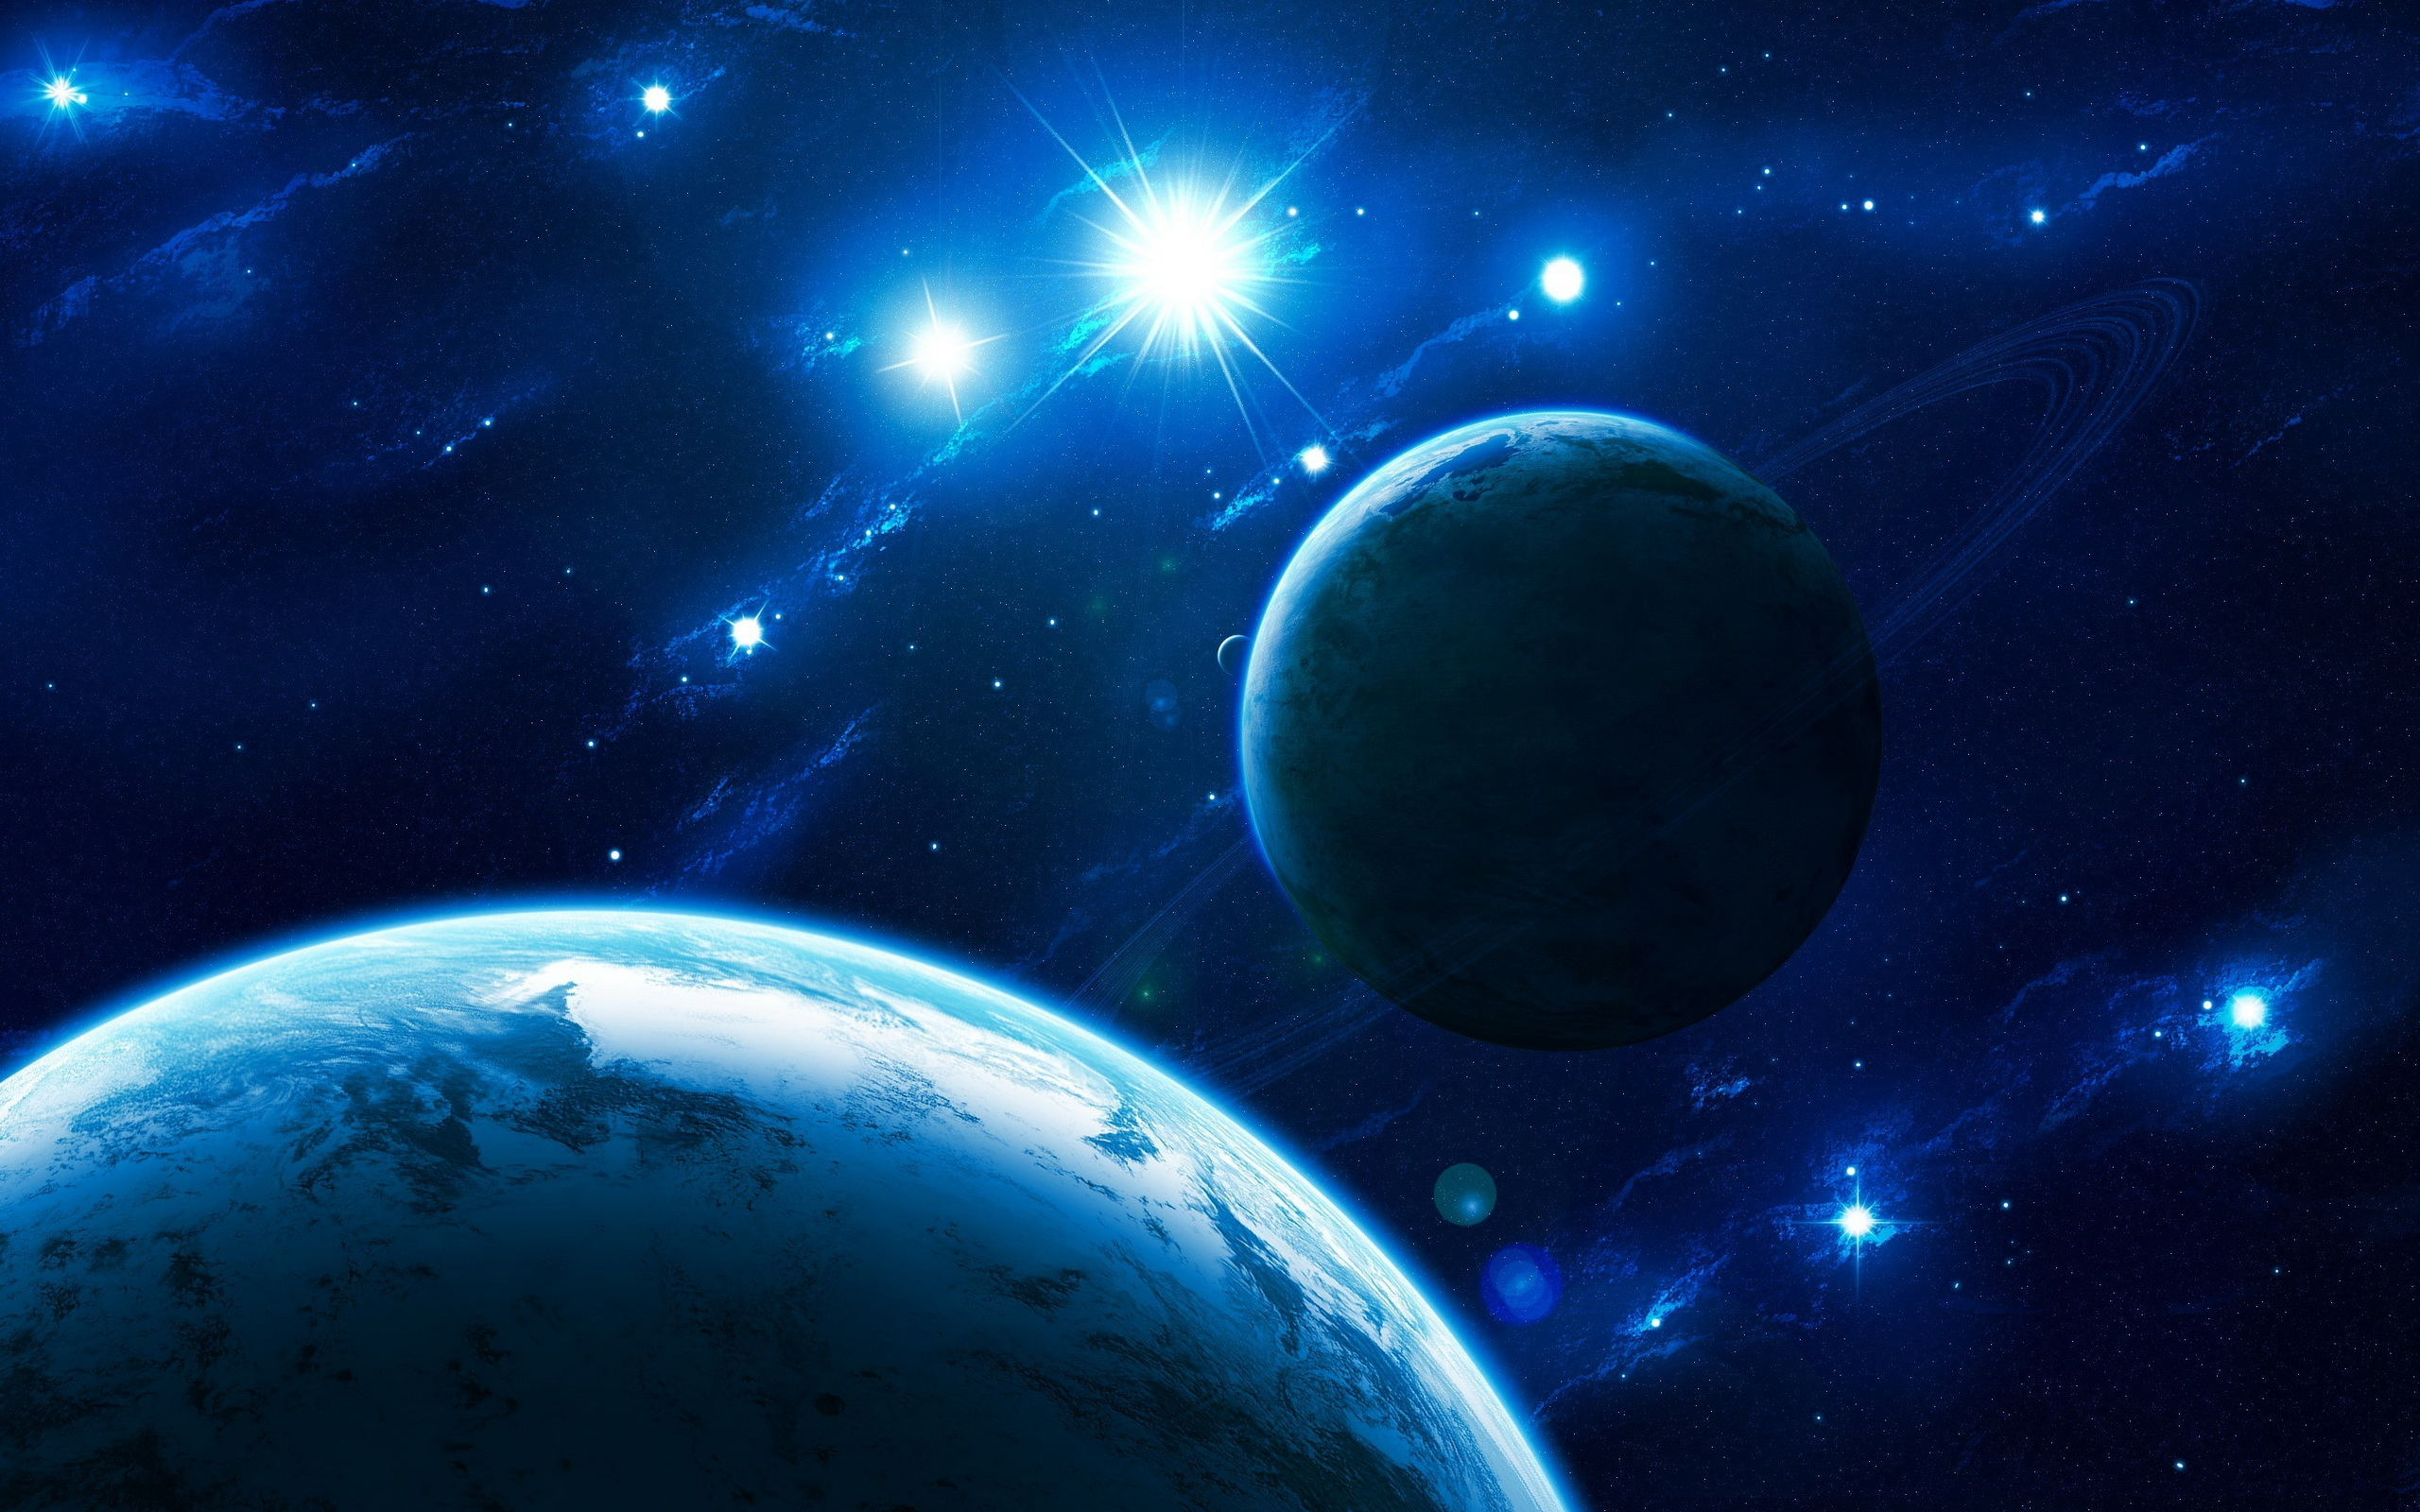 original wallpaper download: Star System - 2560x1600